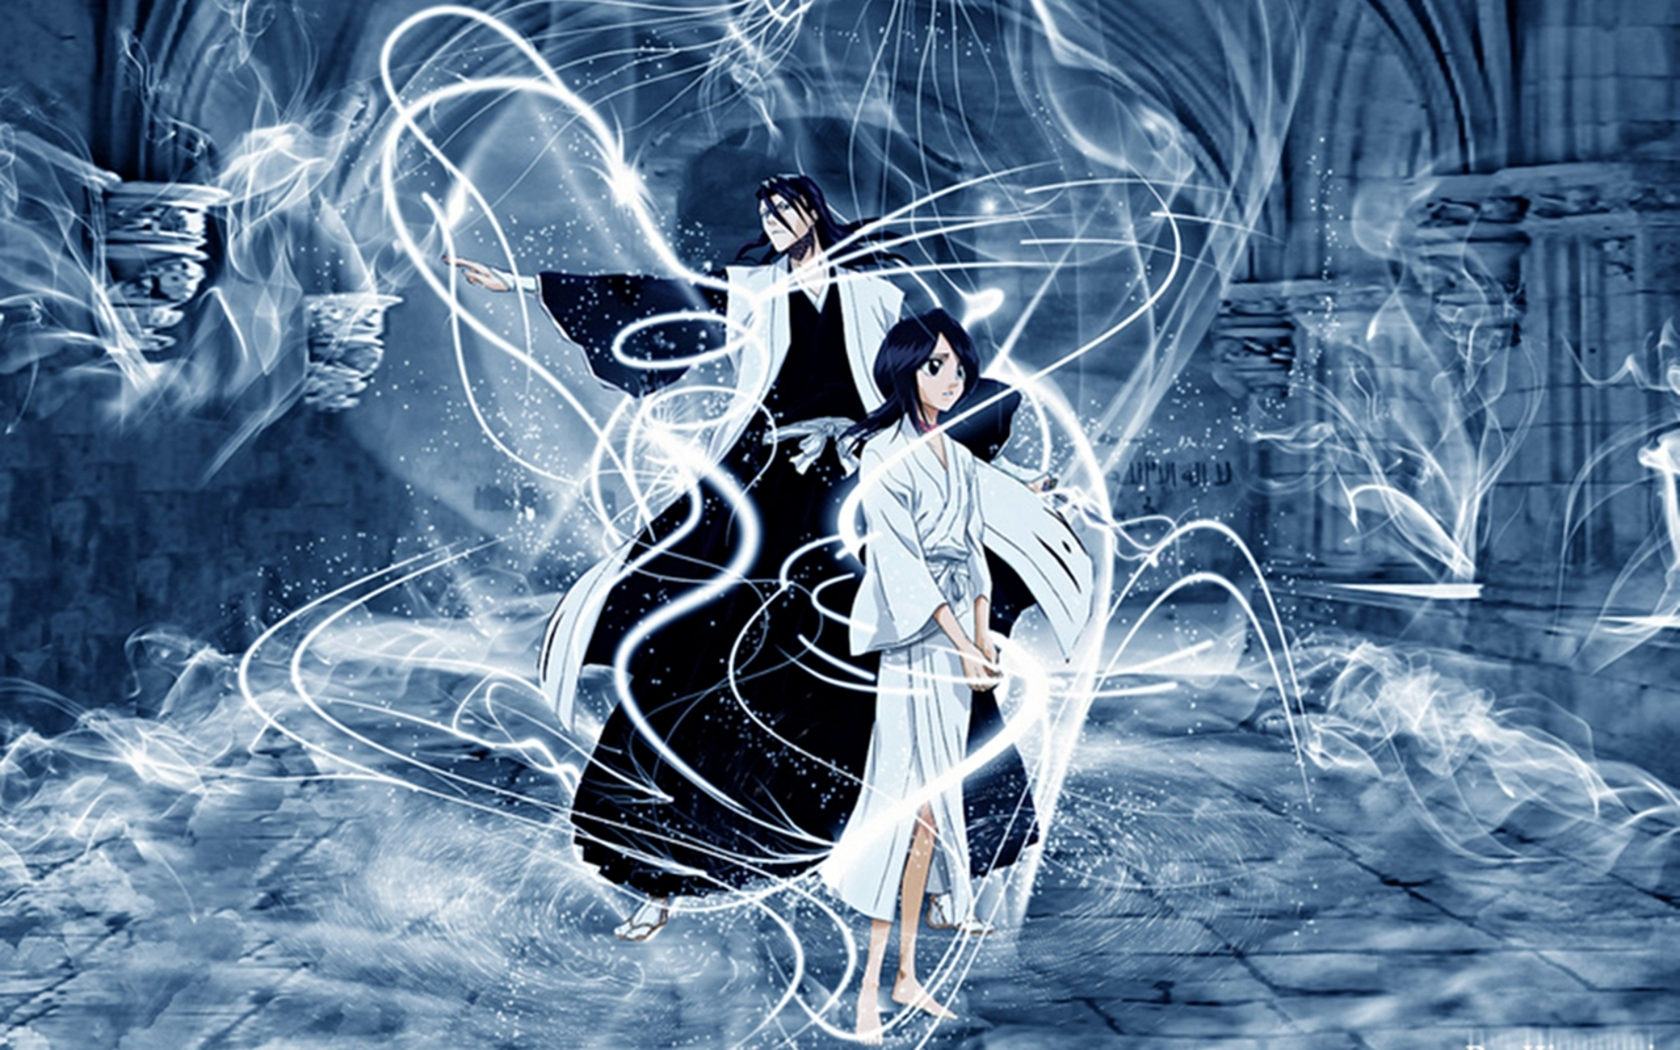 bleach Kuchiki Byakuya rukia HD Wallpaper